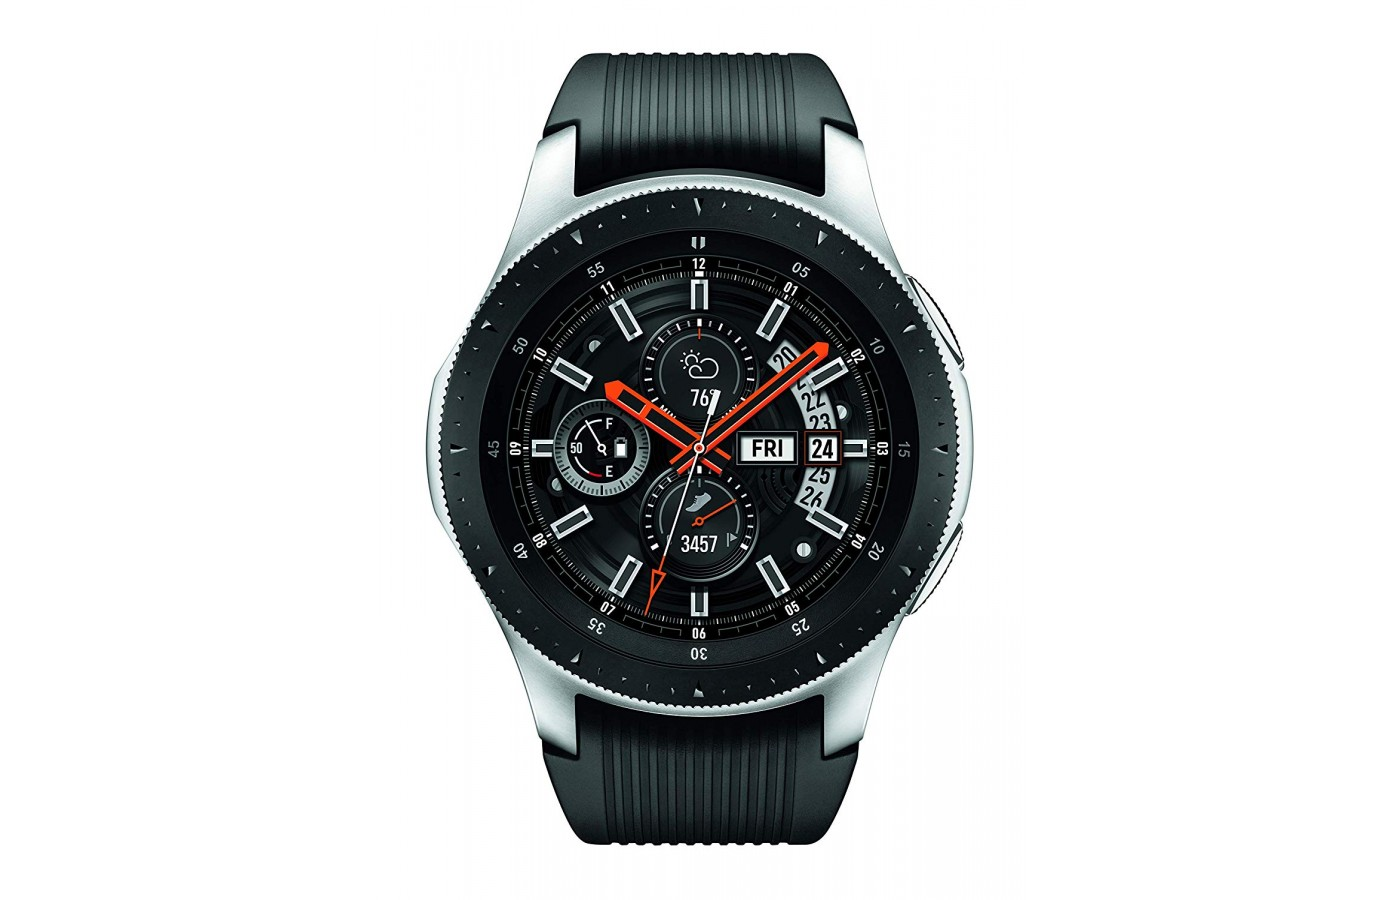 The Samsung Galaxy watch has military-grade durability.